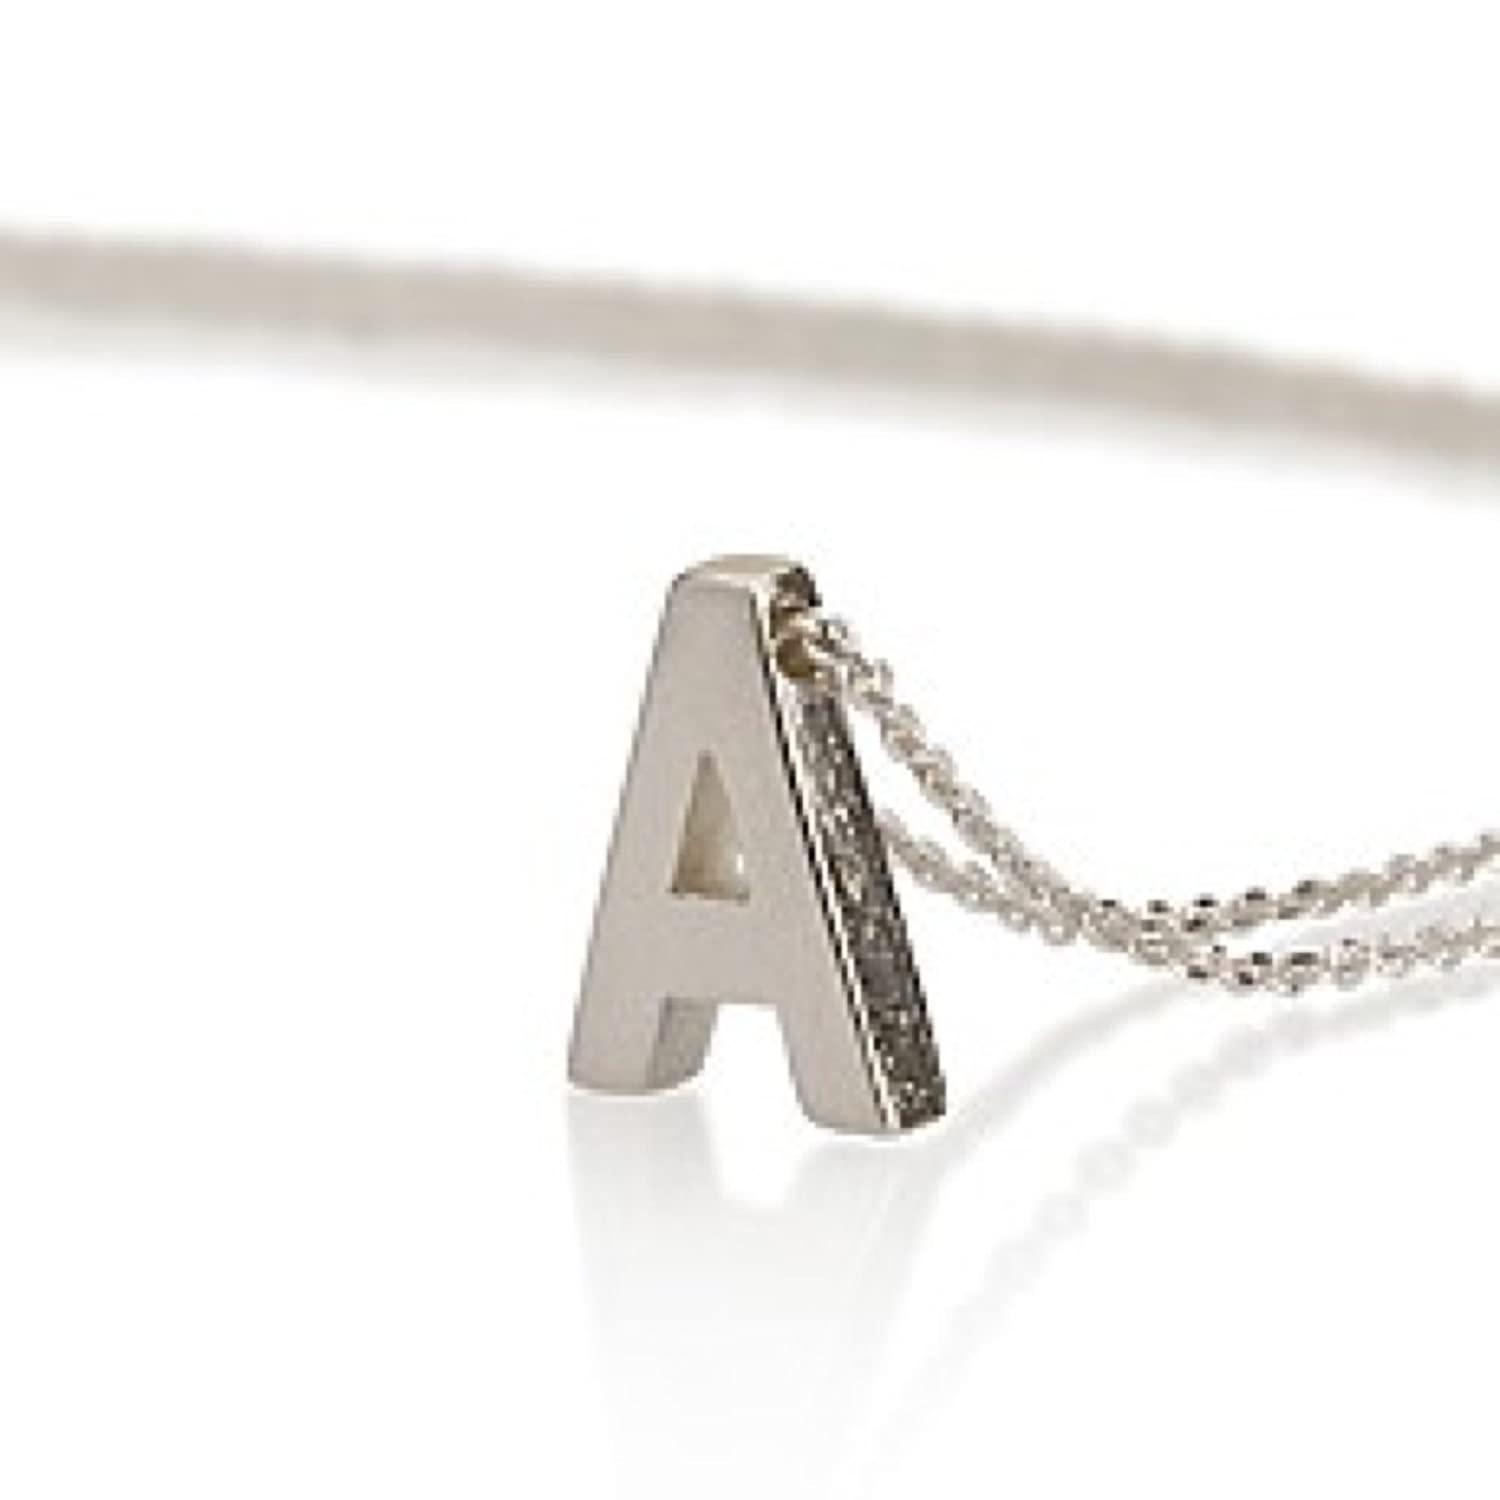 Amazon initial necklace sterling silver personalized initial amazon initial necklace sterling silver personalized initial necklace letter necklace choose any initial 14 inches pendant necklaces jewelry aloadofball Images